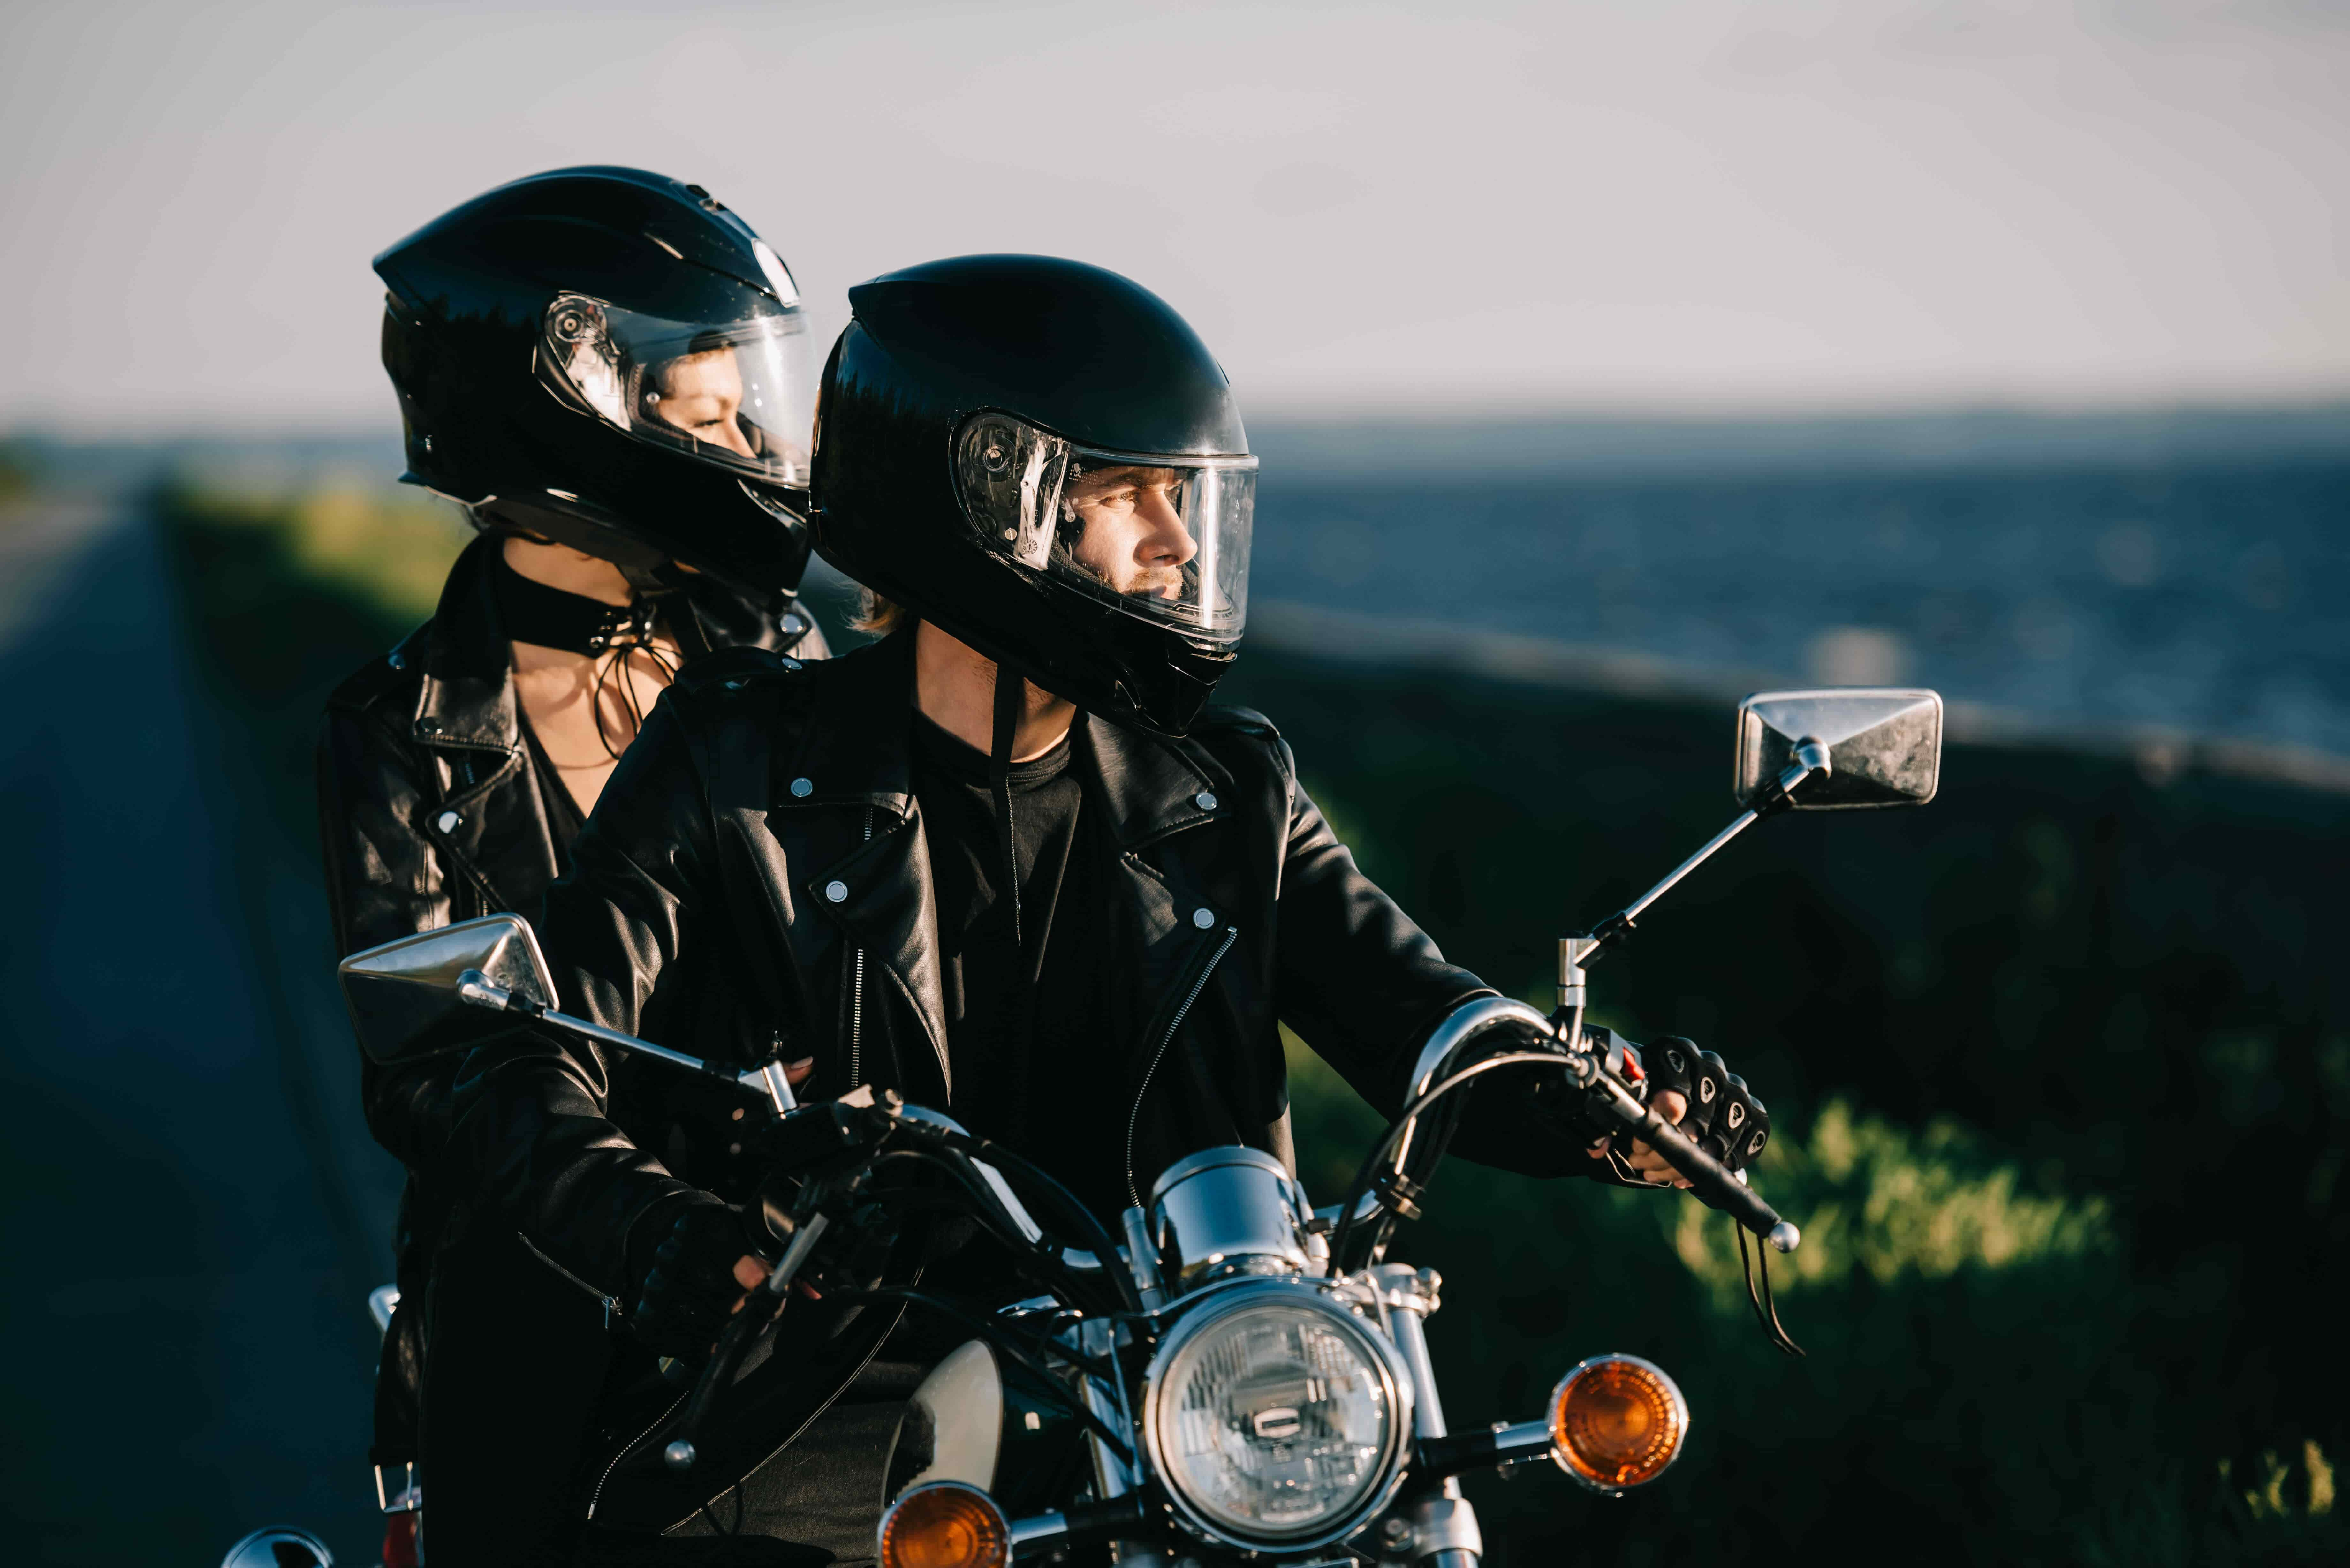 safe-ride-in-a-couple-on-a-motorcycle